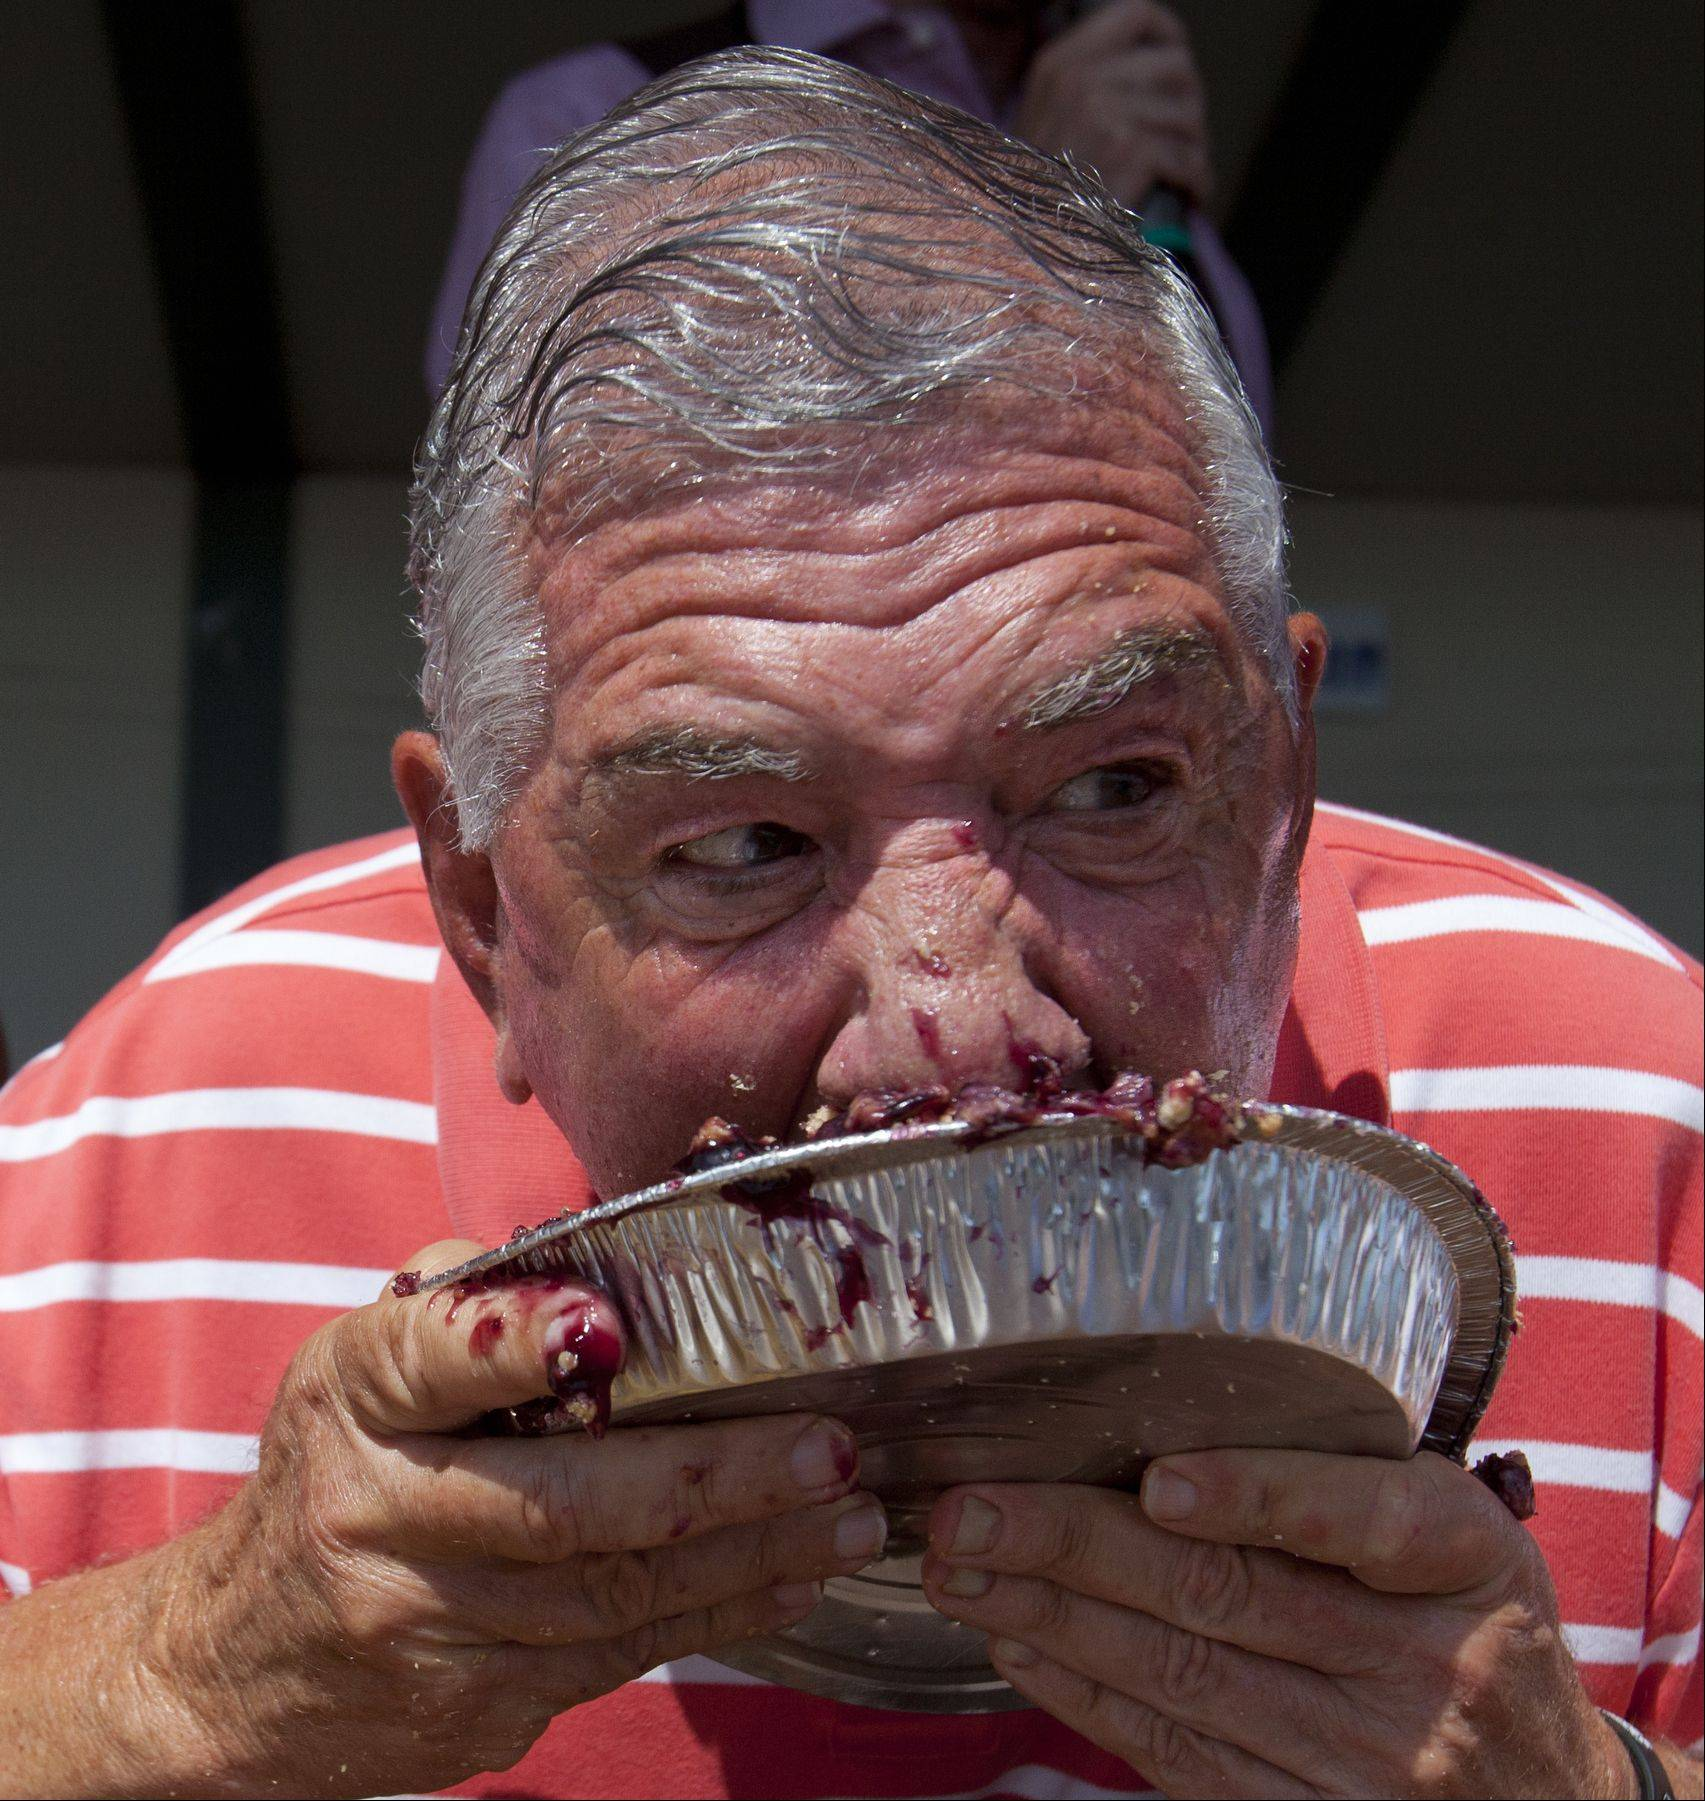 Joe Schwan of Ivanhoe, IL digs his face into his second blueberry pie during an old-fashioned pie eating contest in which contestants had five minutes to eat the most at the Lake County Fair on Saturday. Joe won the adult section of the pie eating contest eating a pie and a half.